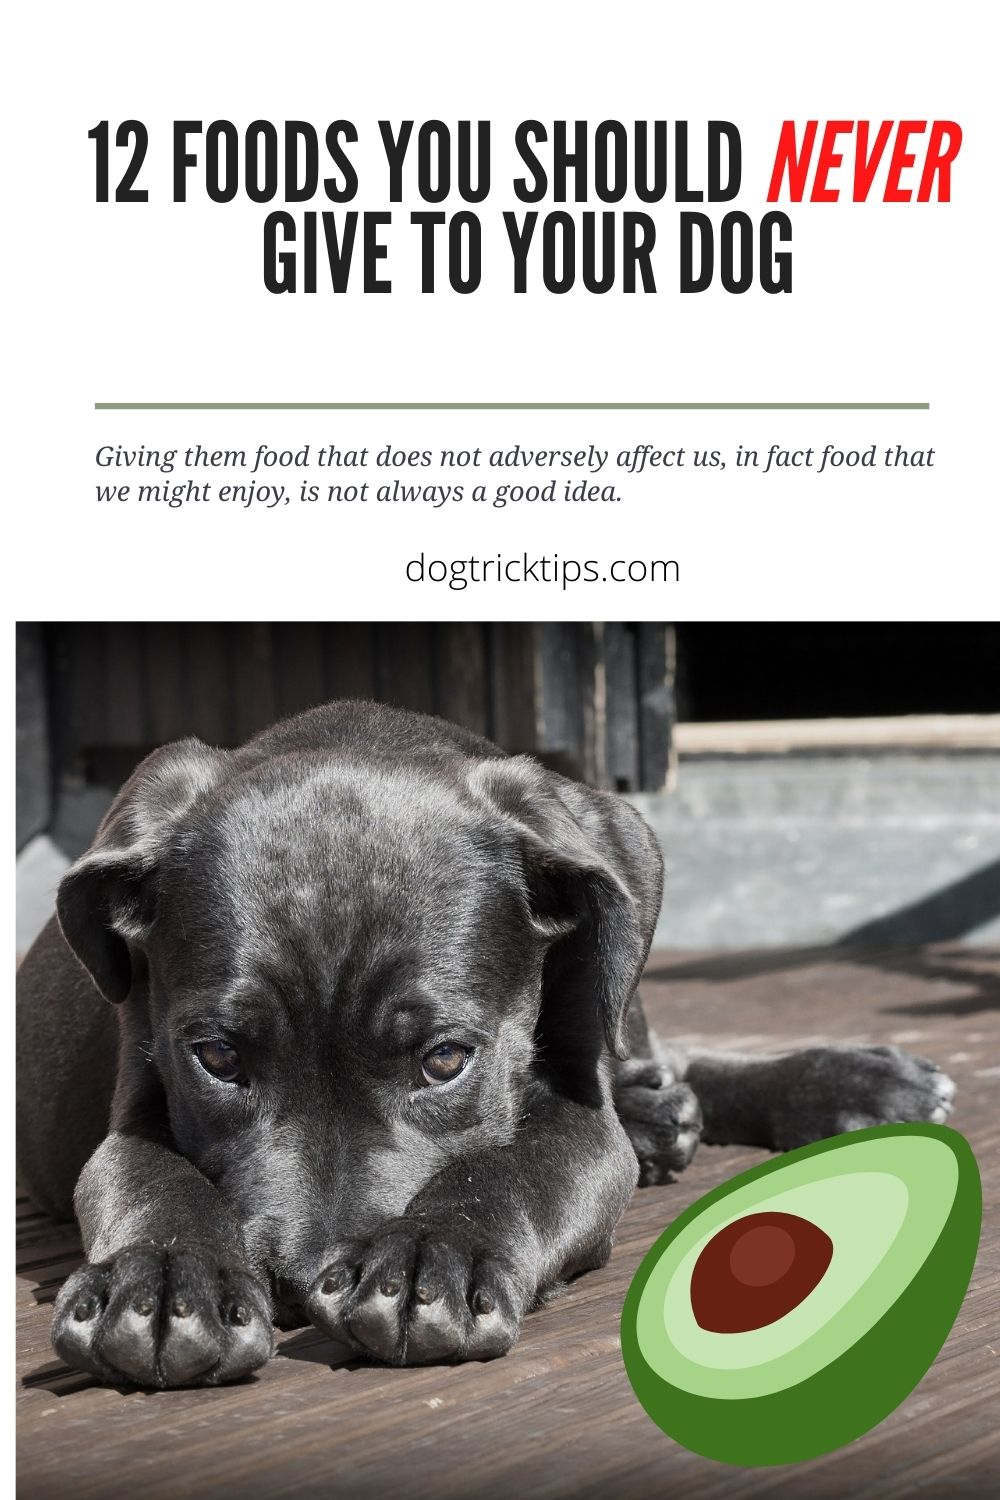 12 Foods You Should Never Give To Your Dog